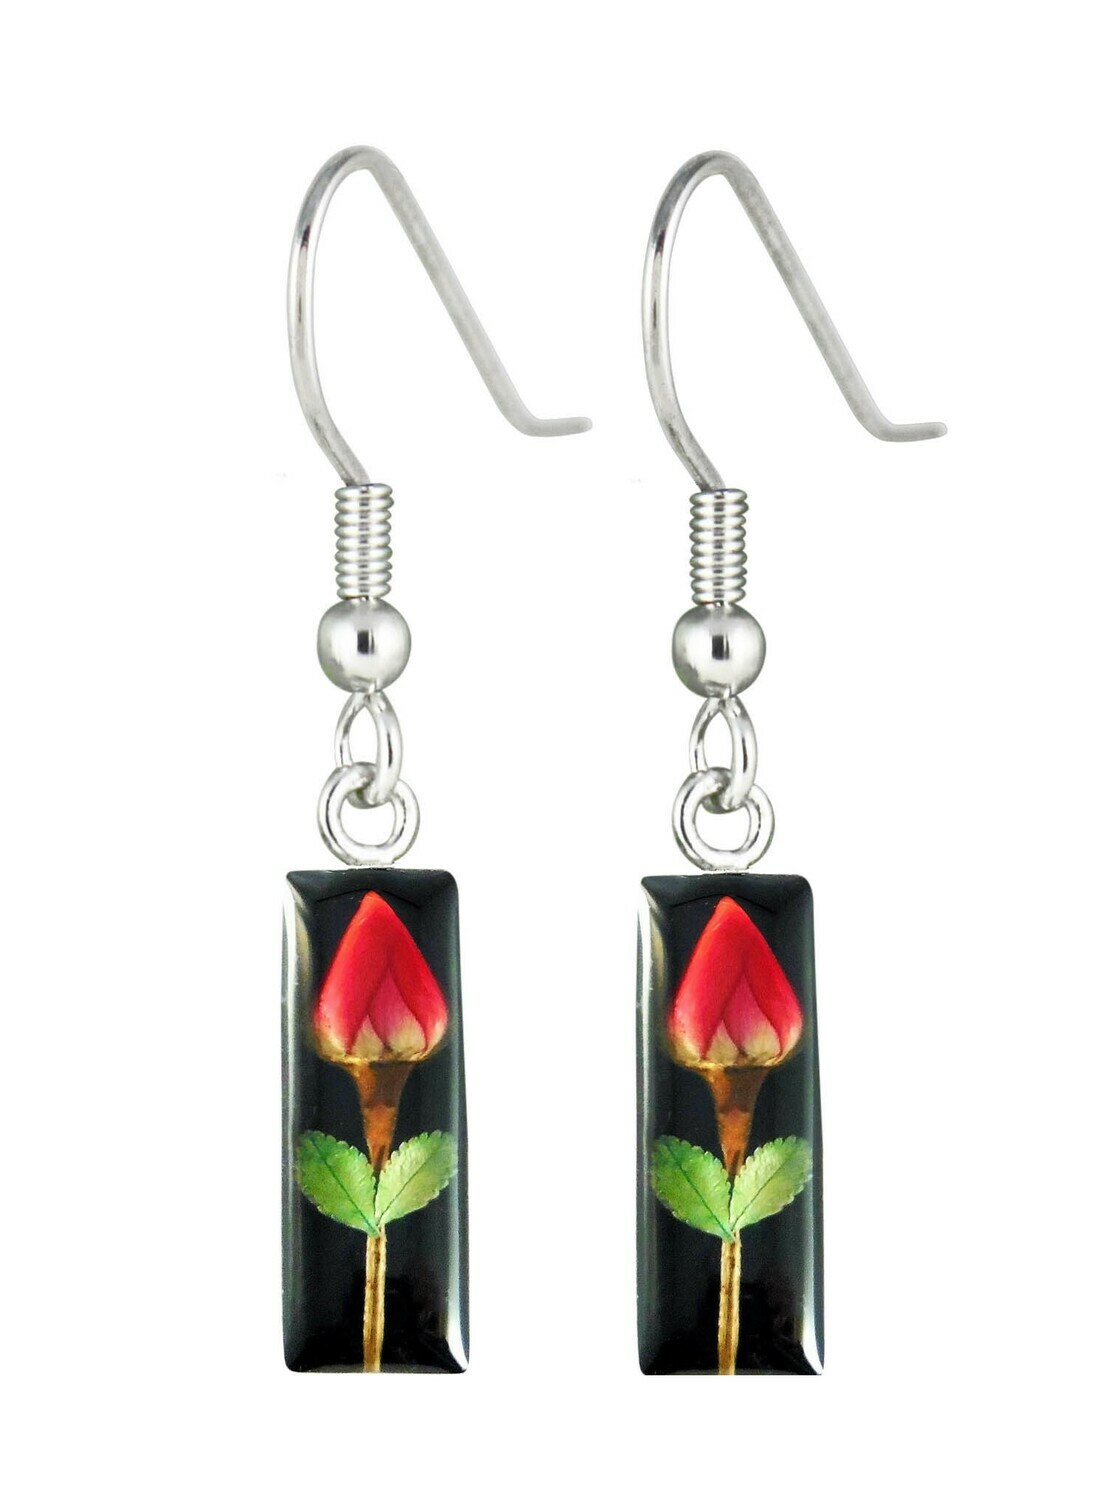 Rose, Small Rectangle Hanging Earrings, Black Background.